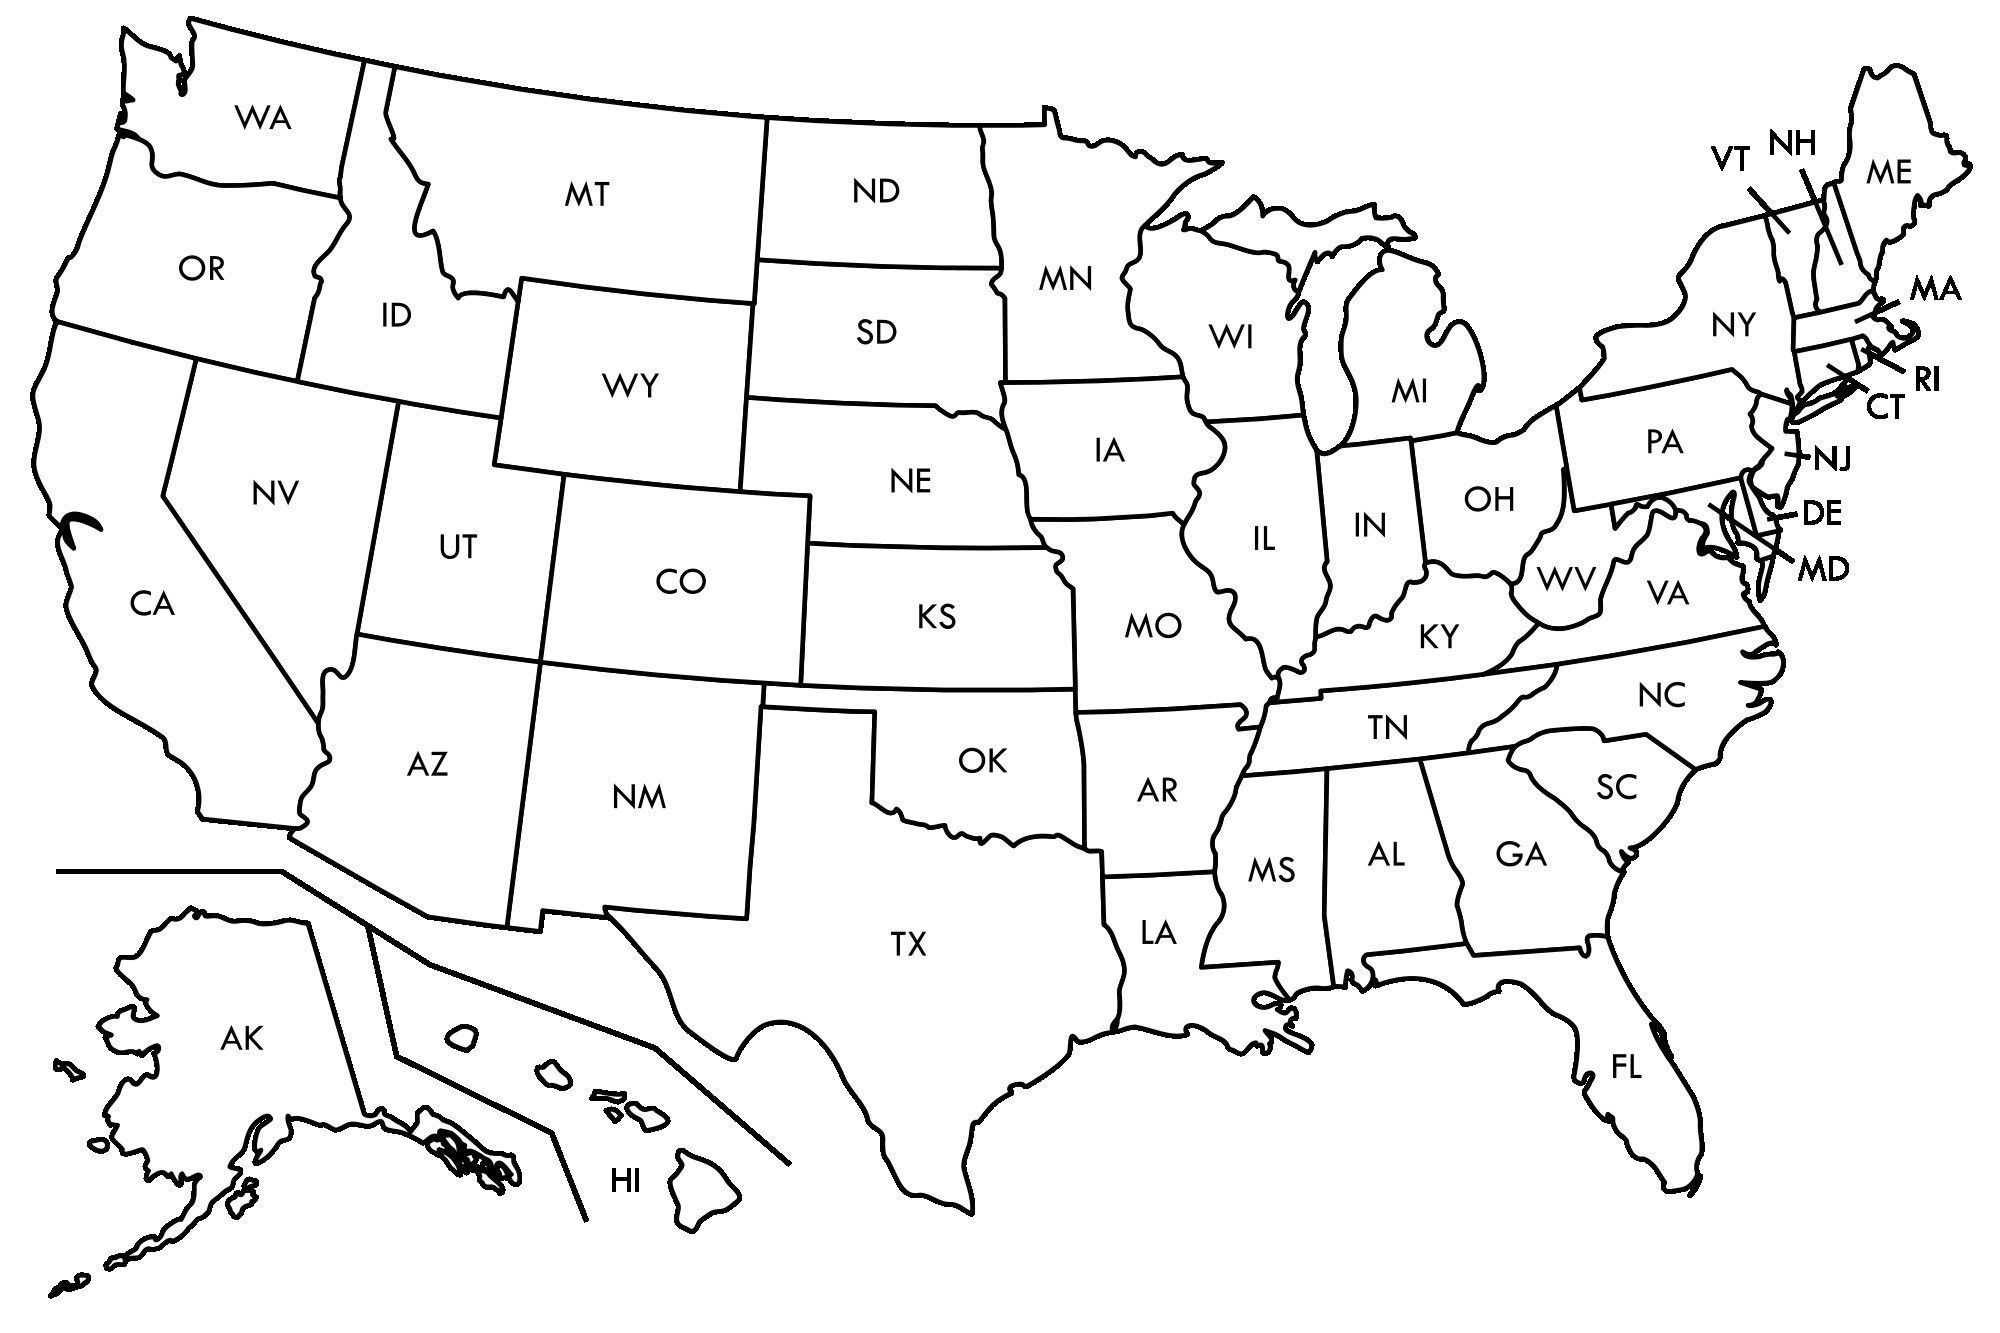 Free Map Of United States With States Labeled Free Printable Us Map Blank Maps Blank Usa Map For Kids Us Map Printable Maps For Kids United States Map Labeled